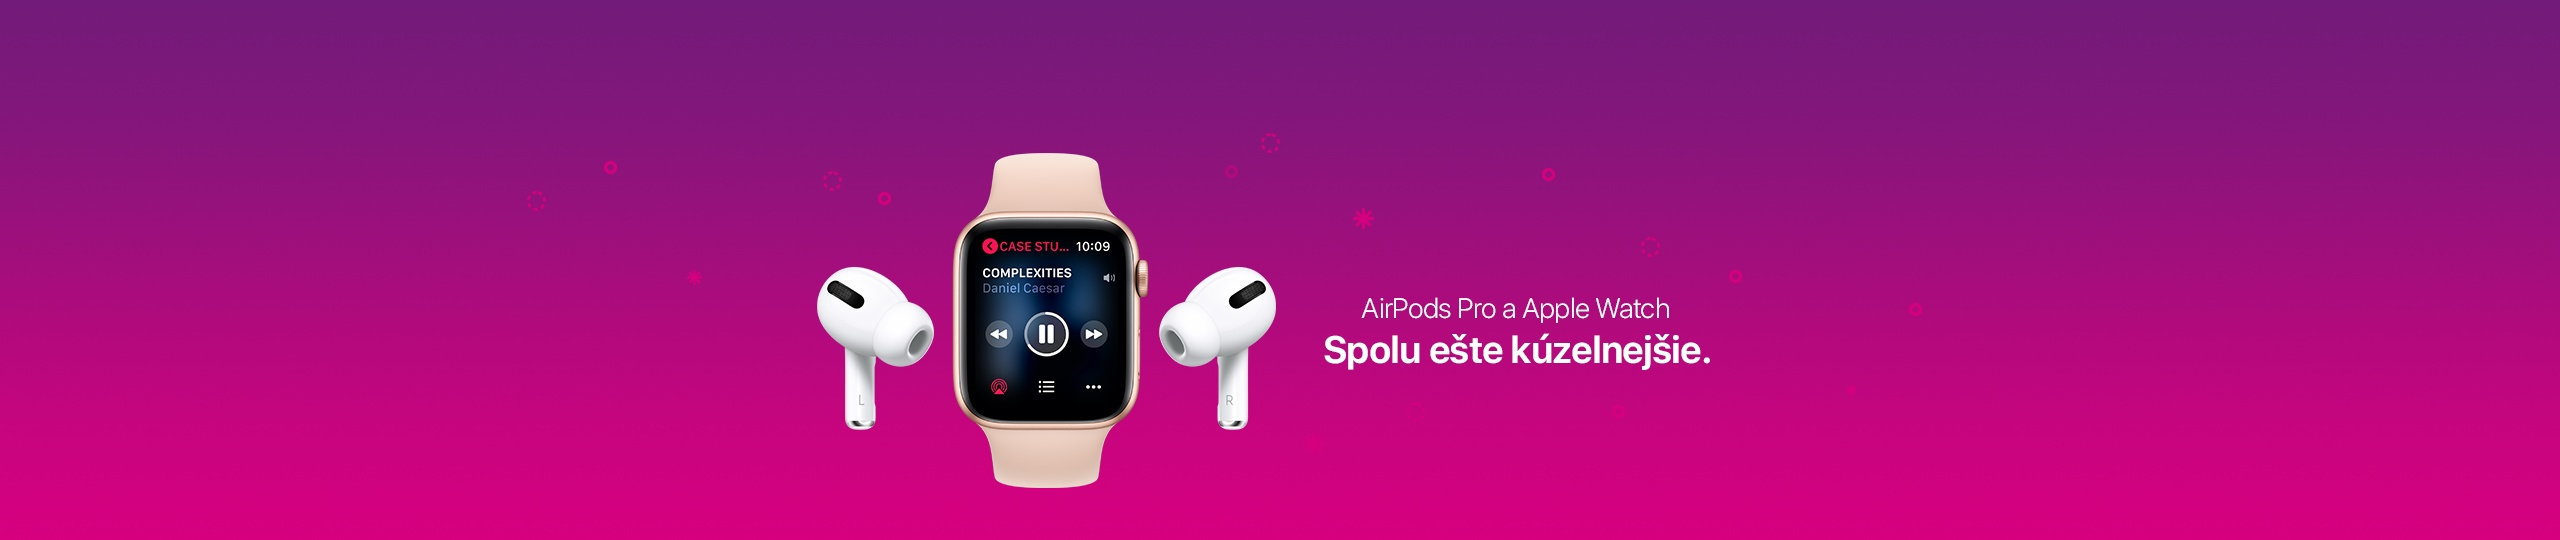 Q120 - AirPods Pro a Apple Watch